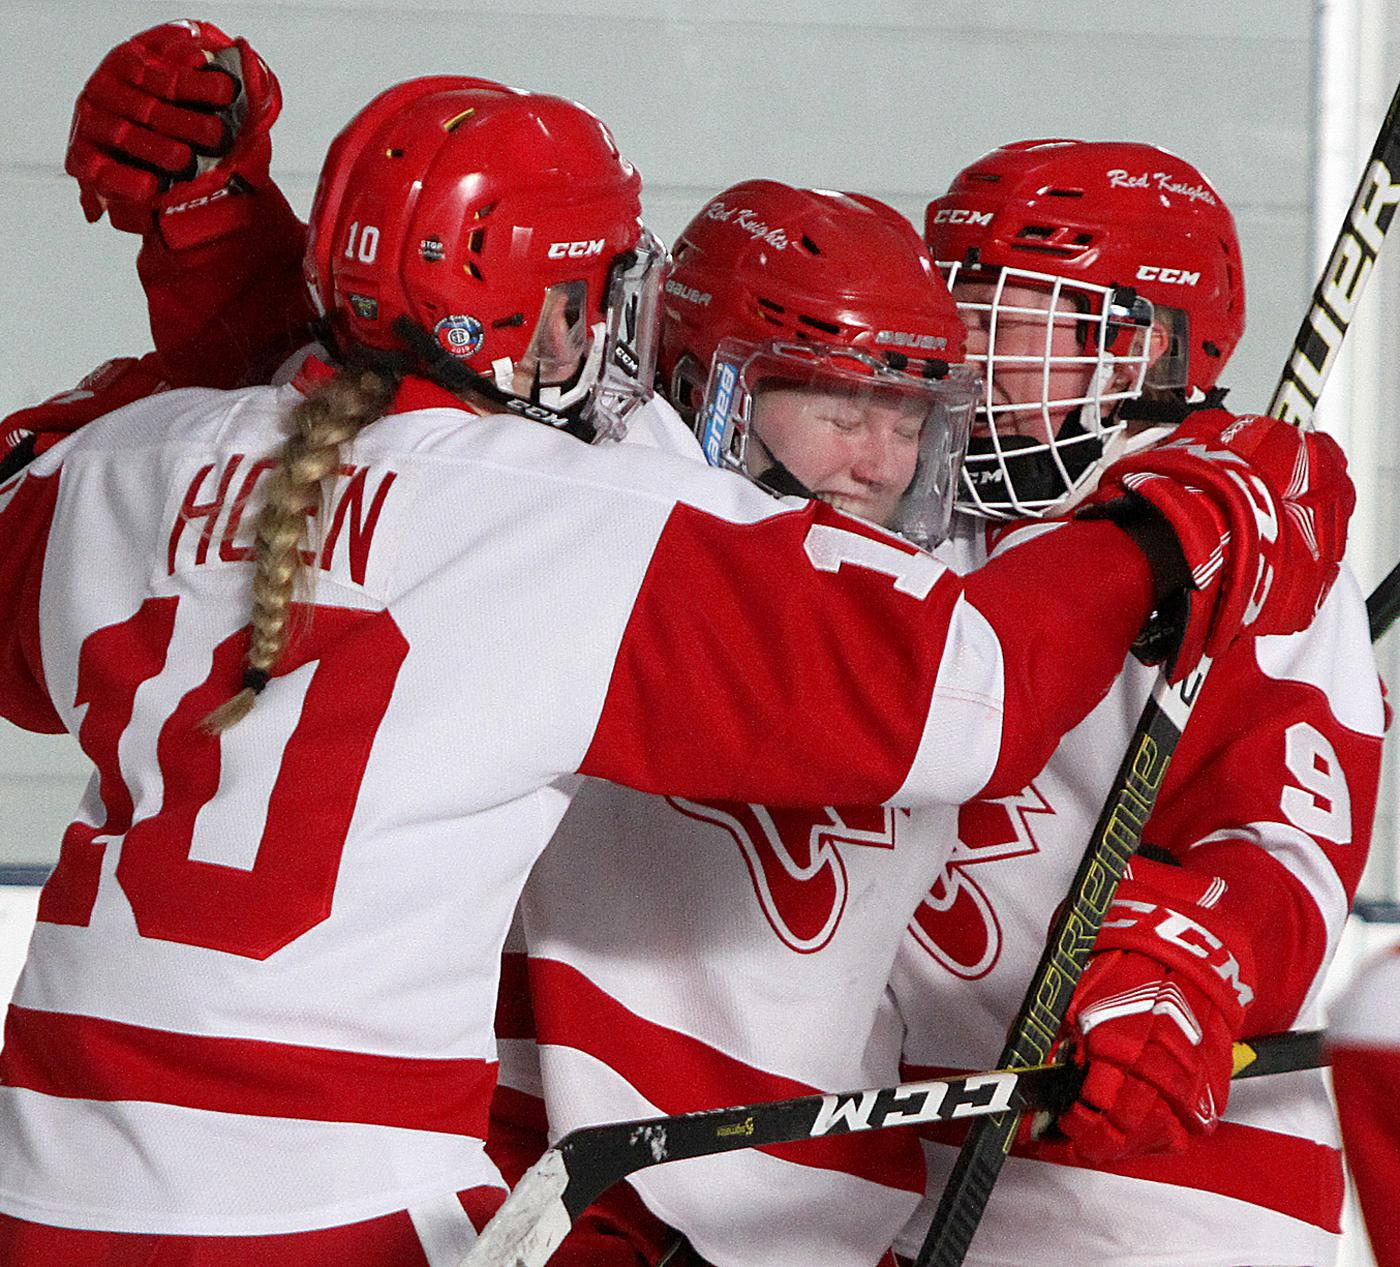 Benilde-St. Margaret's senior forward Olivia Haag is mobbed by teammates Emma Hoen (10) and Abby Hancock (9) after a second-period goal Thursday evening. Photo by Drew Herron, SportsEngine